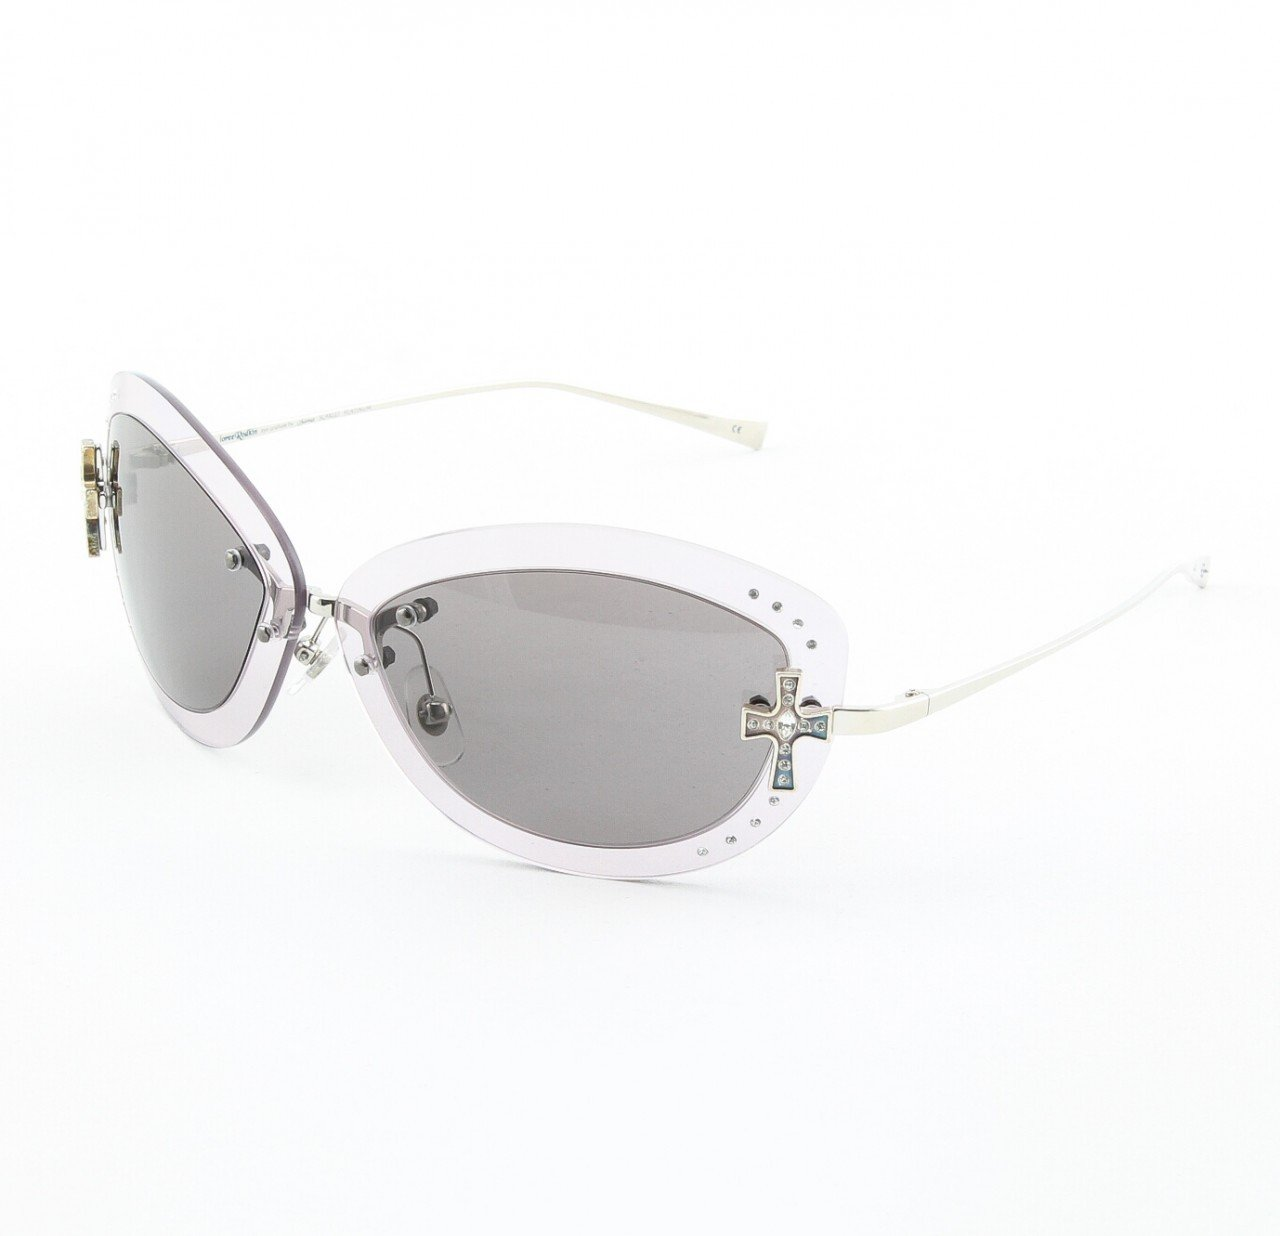 Loree Rodkin Scarlet Sunglasses by Sama Col. Lavender with Gray Lenses and Swarovski Crystals